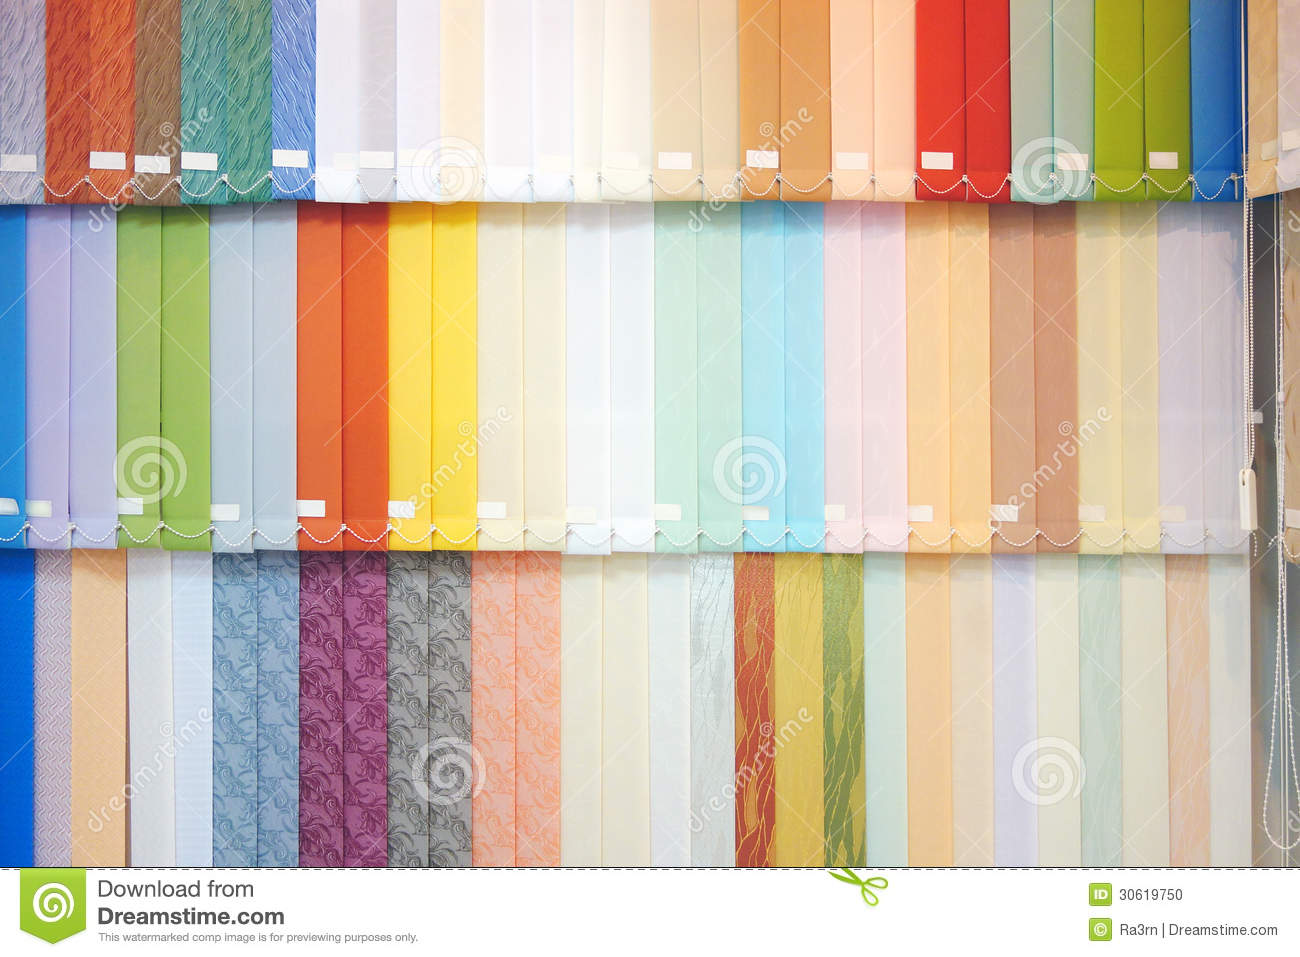 Vertical Blinds Stock Photo Image 30619750